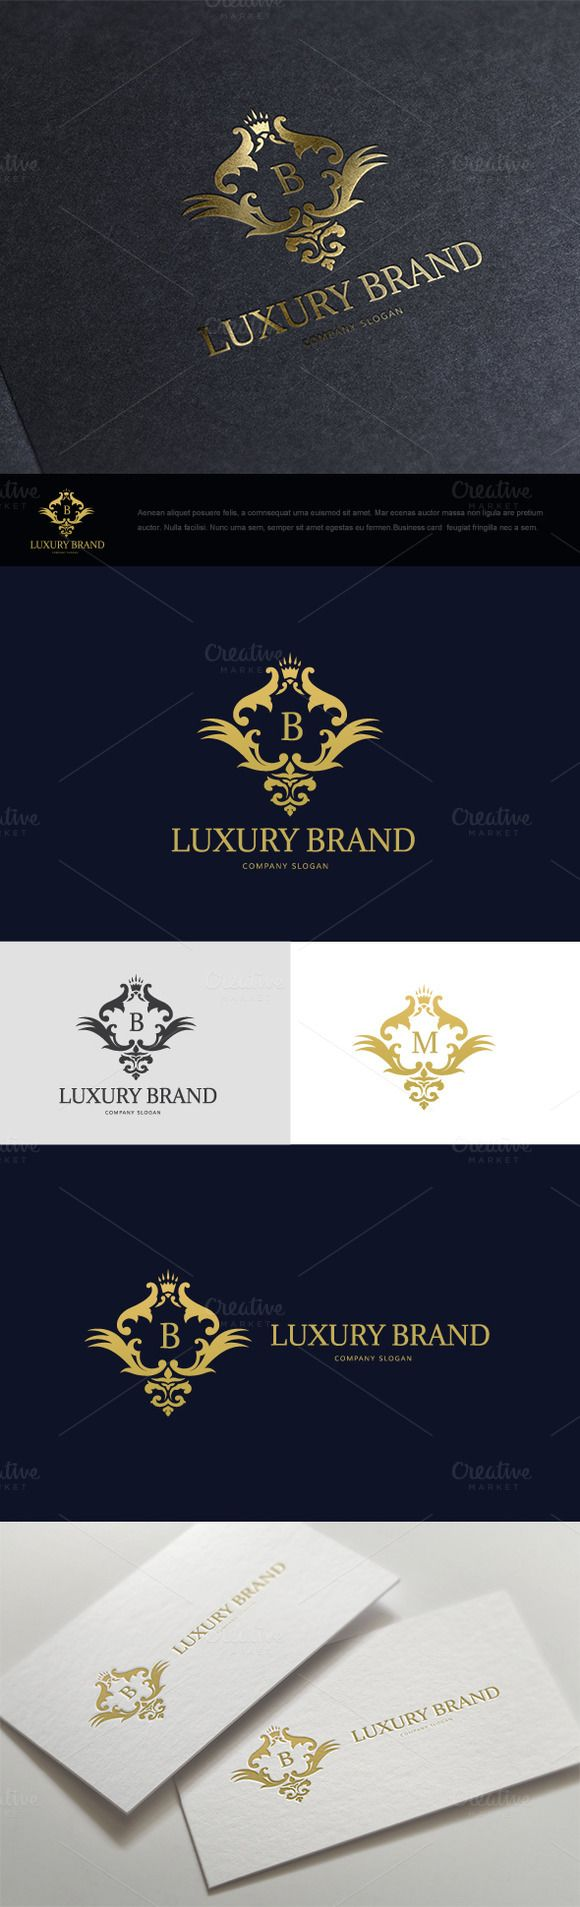 Luxury Brand Logo by Super Pig Shop on Creative Market